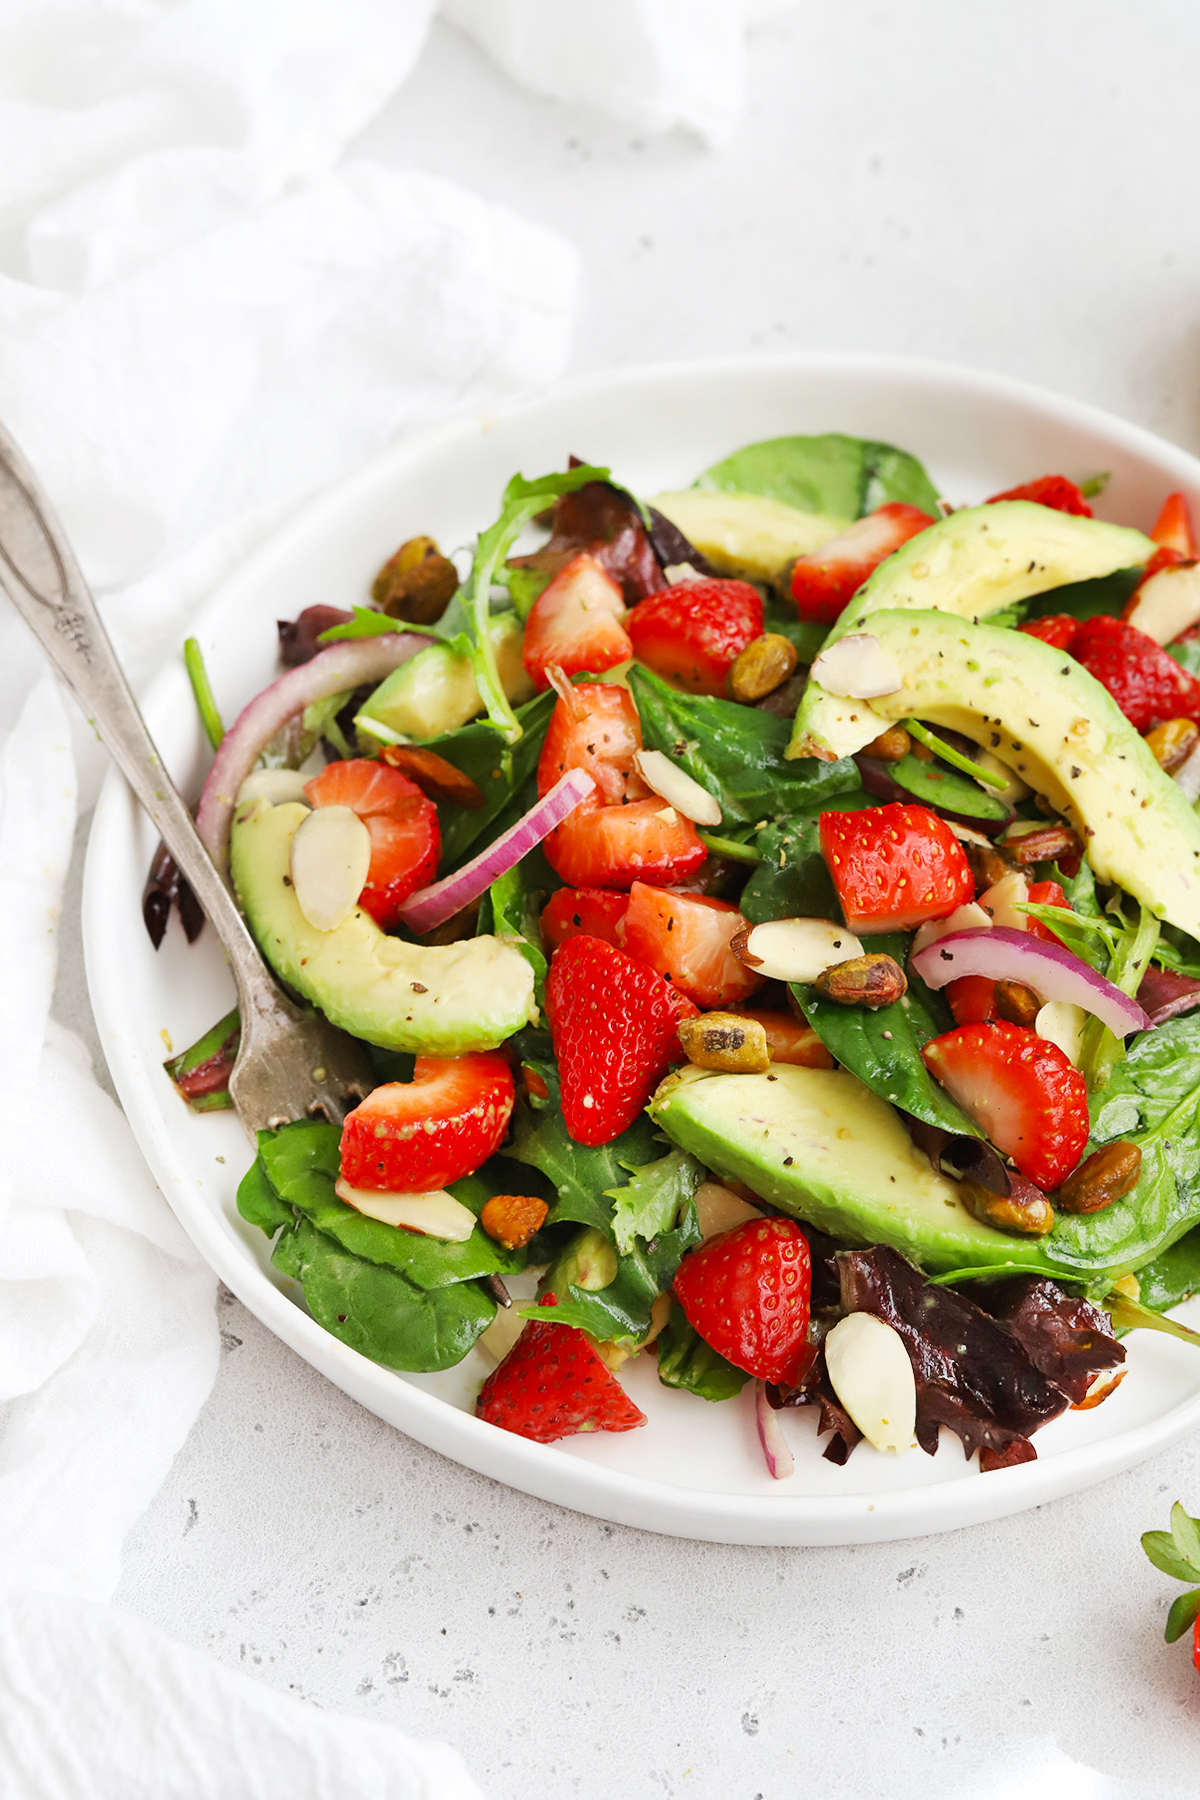 Front view of strawberry spinach salad with avocado on a white plate